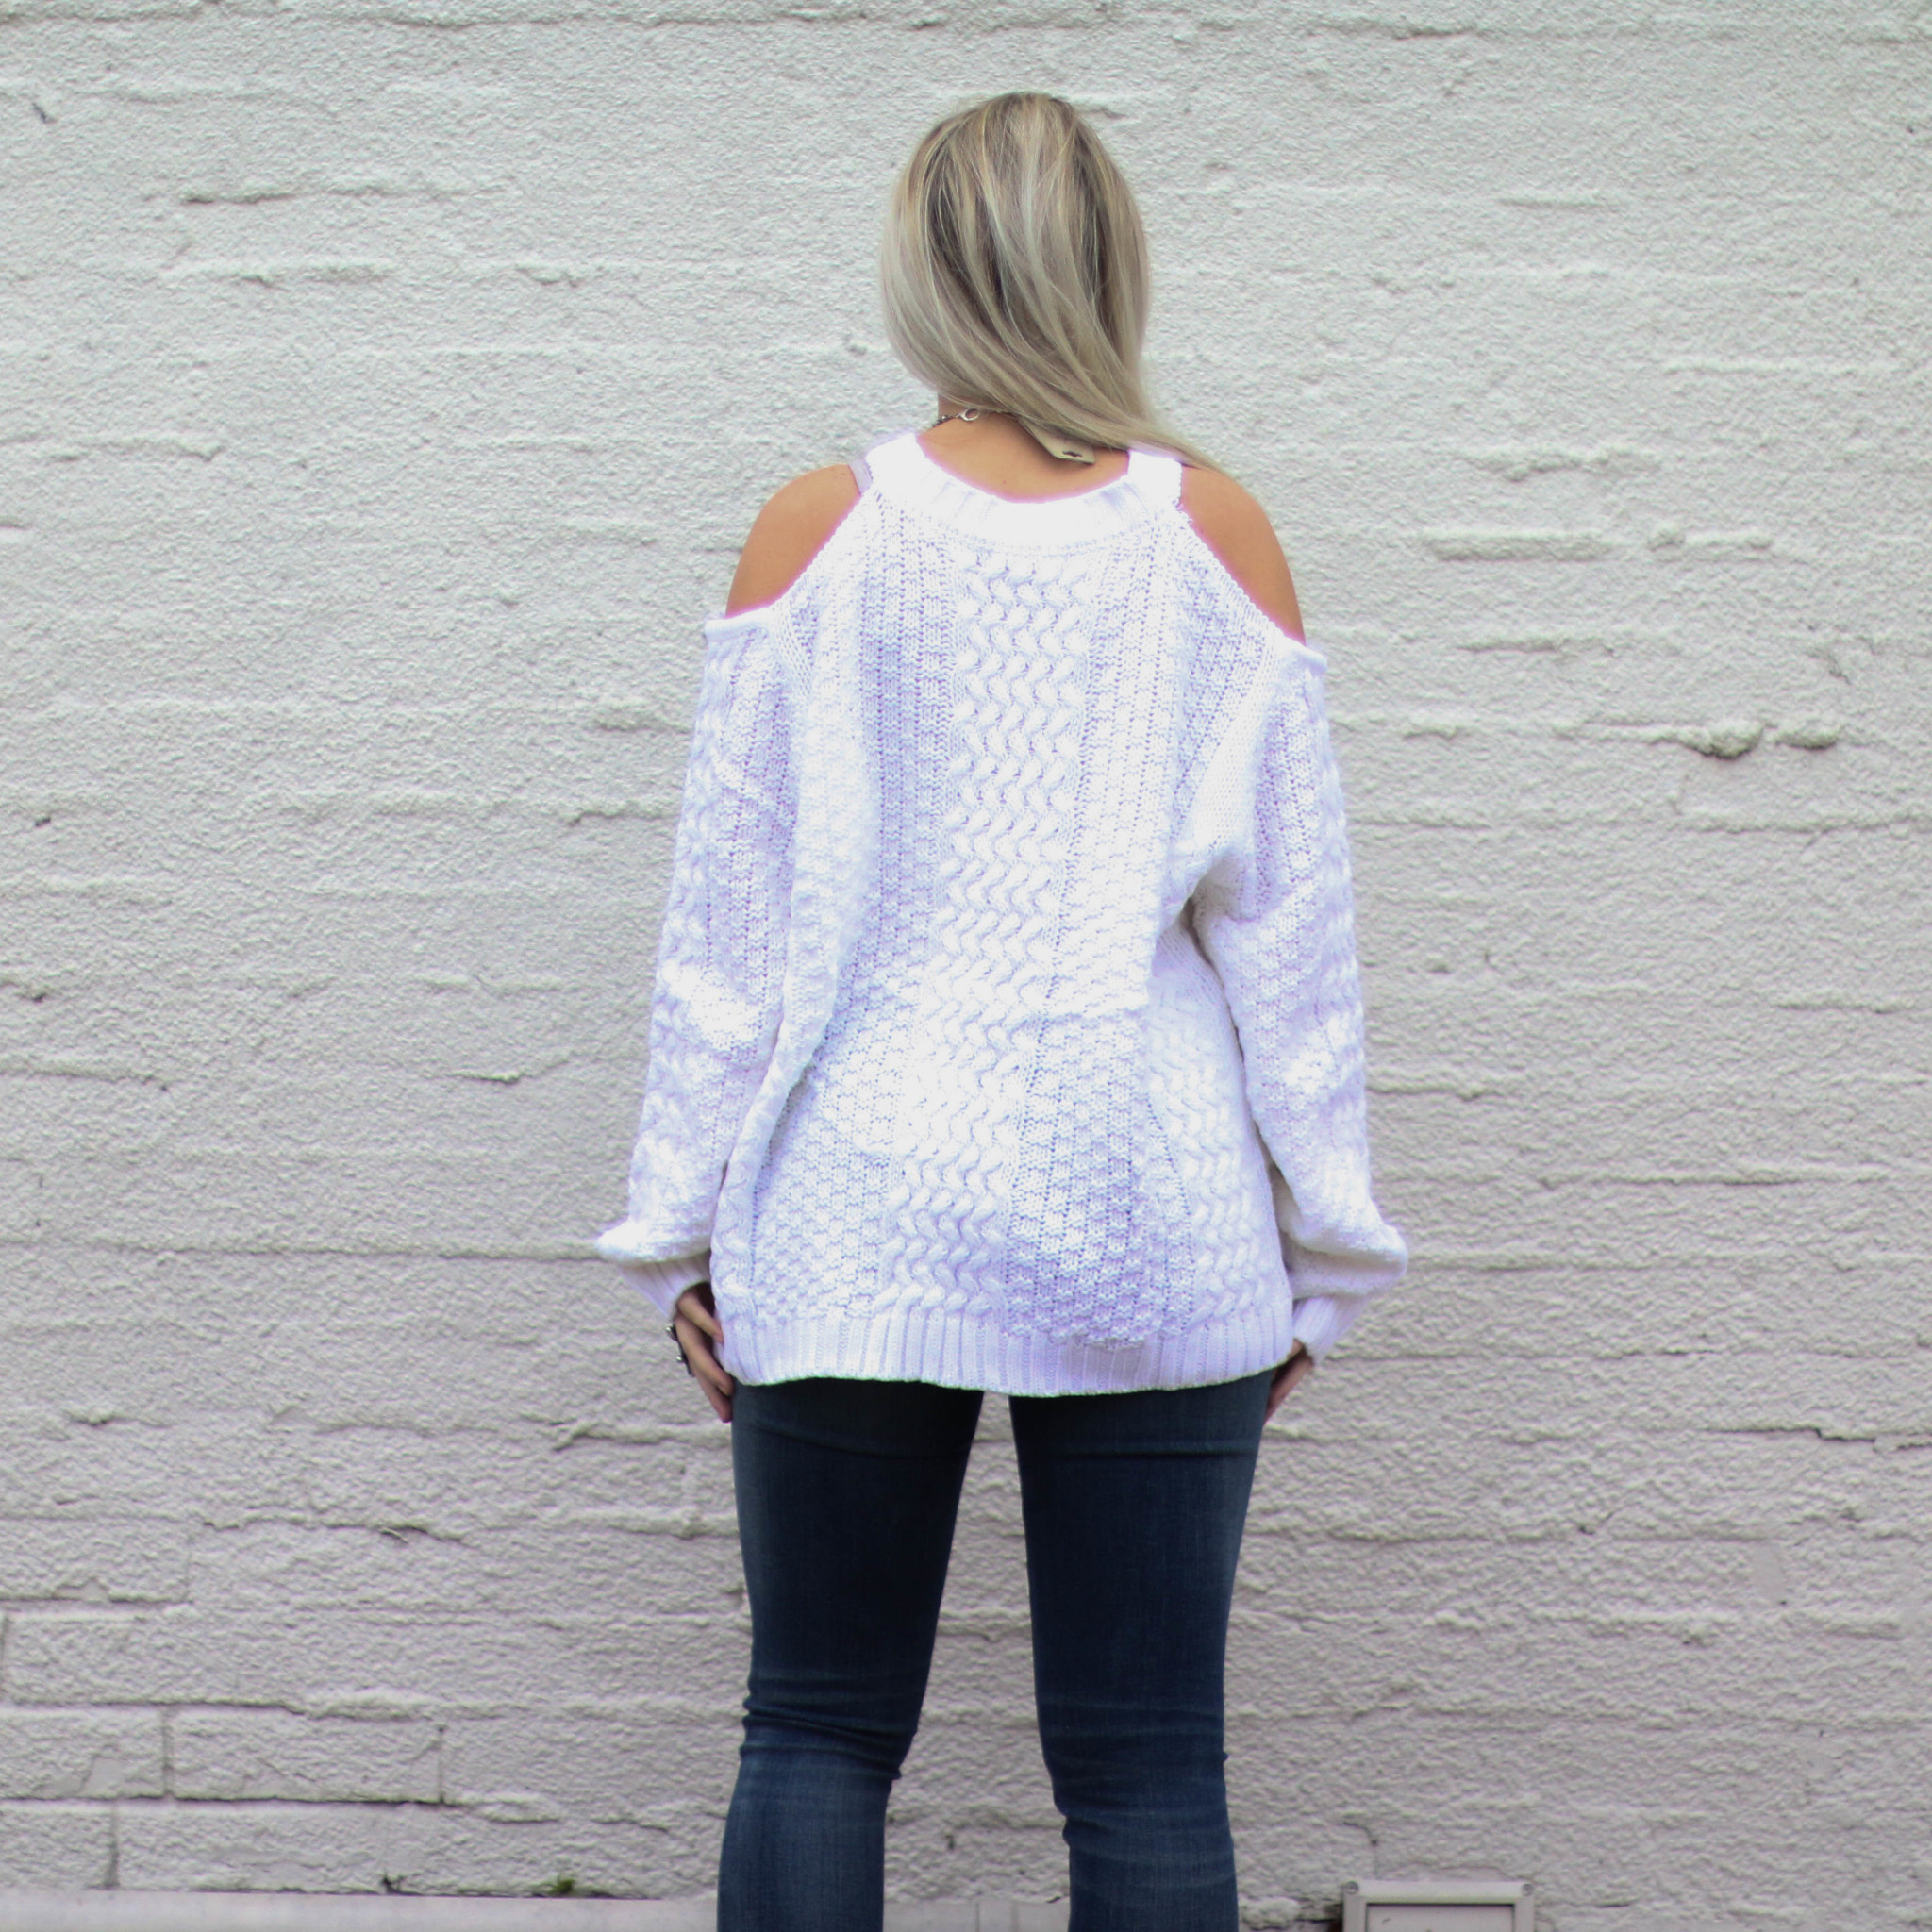 Punchy's White Cold Shoulder Sweater